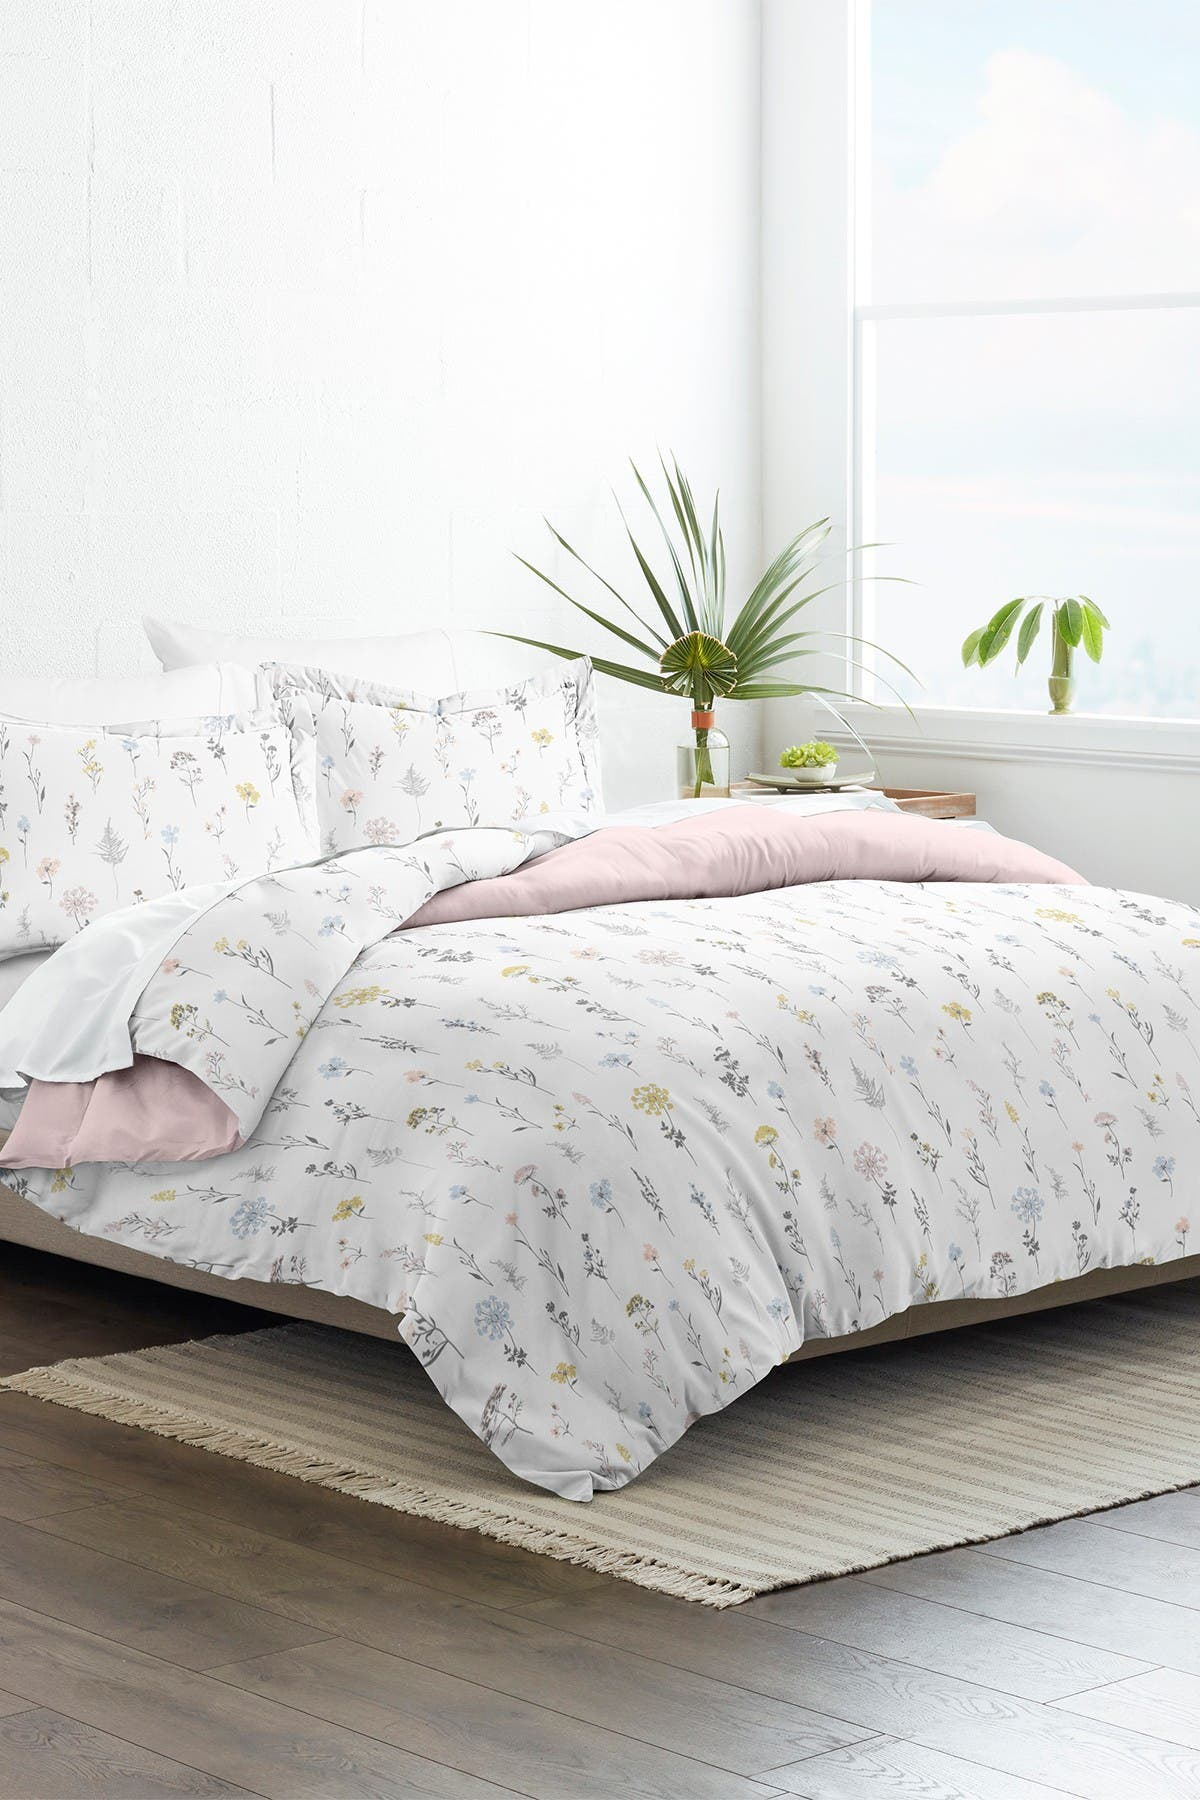 Image of IENJOY HOME Home Collection Premium Ultra Soft Wild Flower Pattern 3-Piece King/California King Reversible Duvet Cover Set - Pink